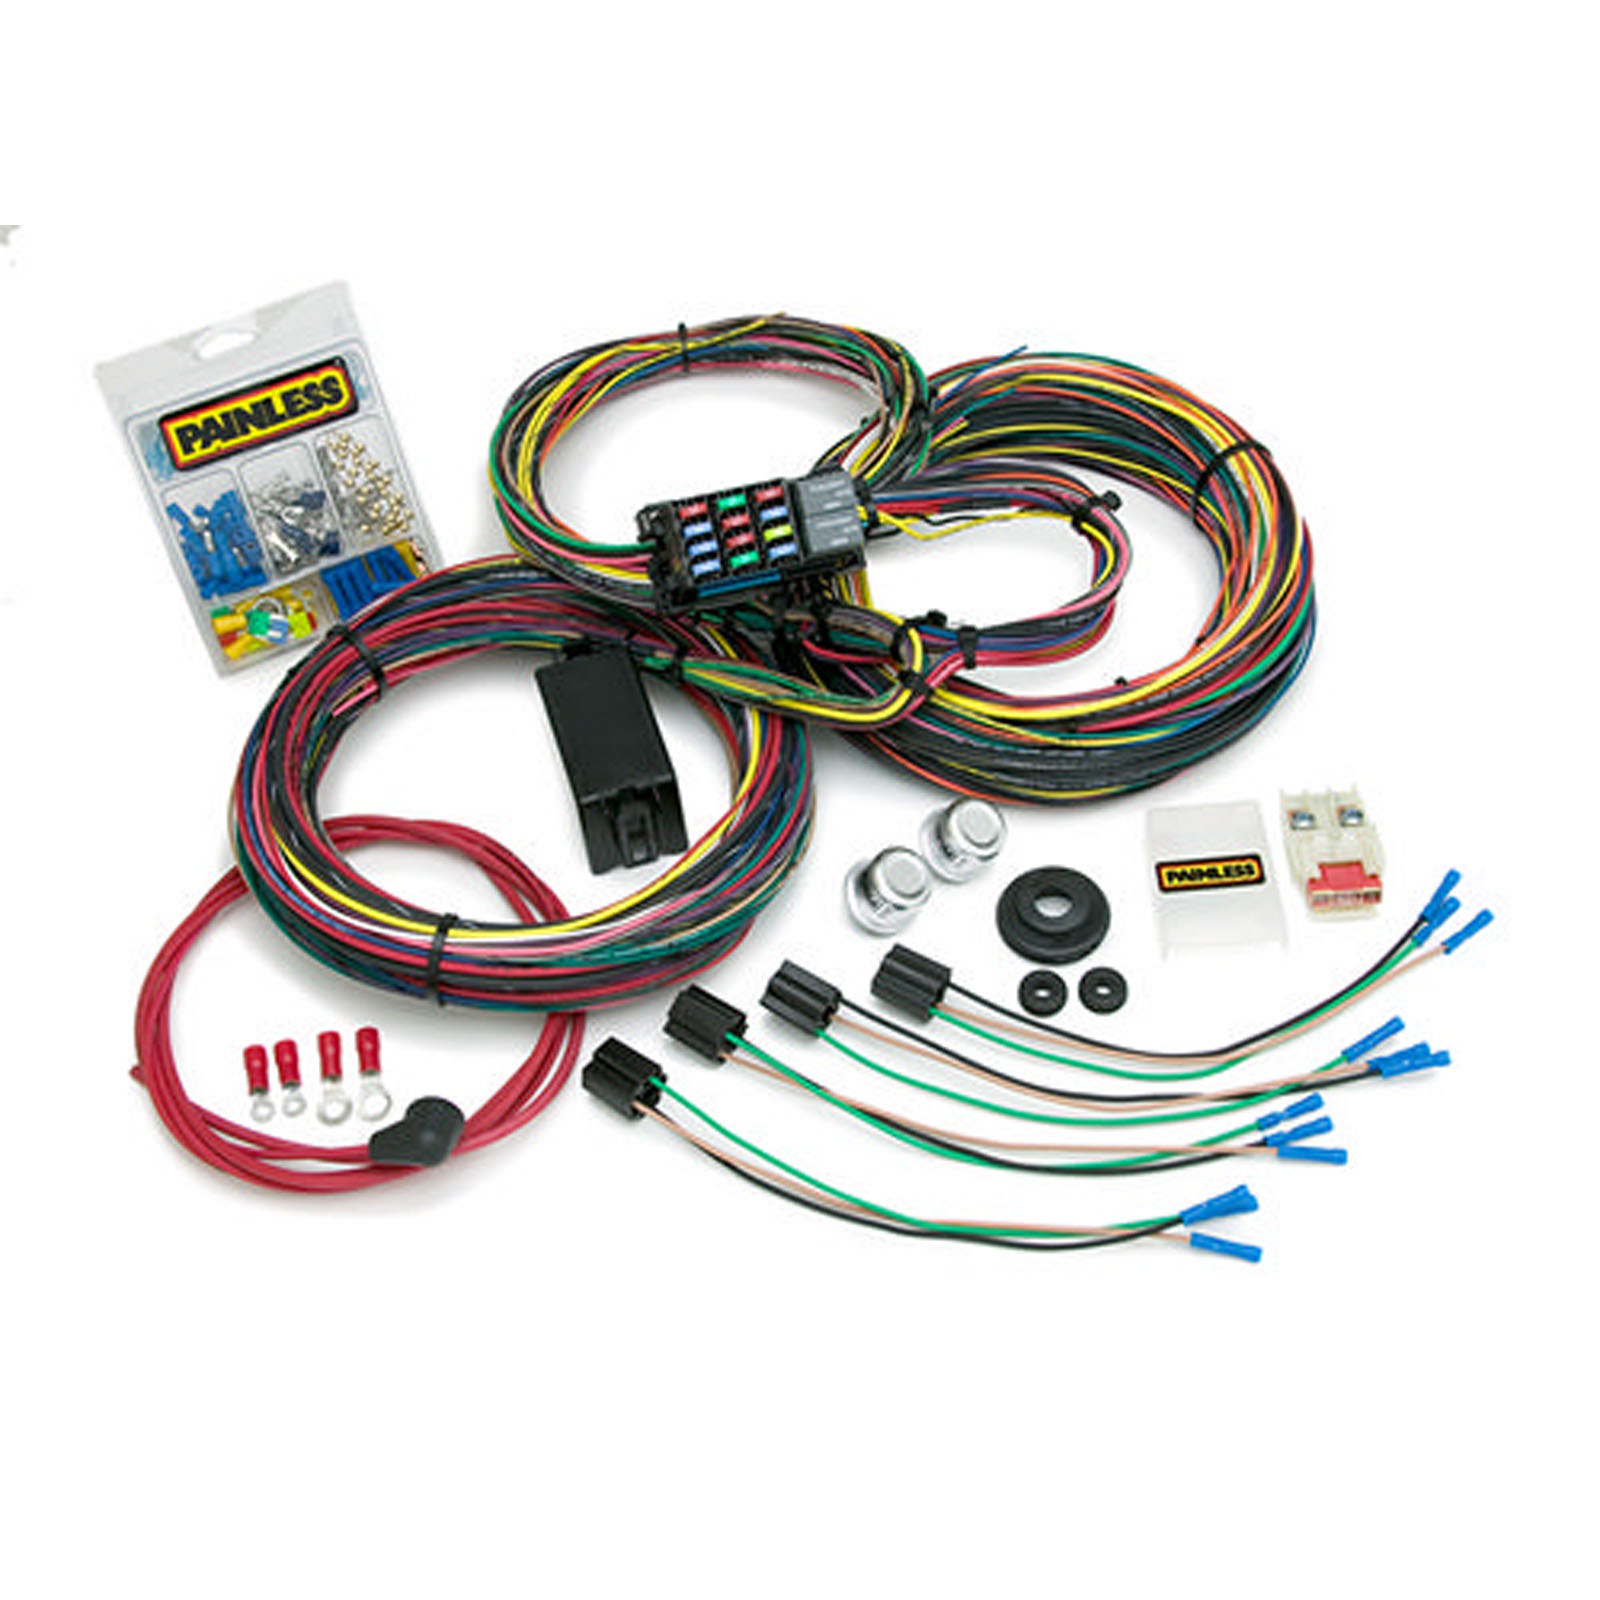 PAINLESS WIRING 10123 66-76 Ford Muscle Car Wiring Harness 21 Curcui